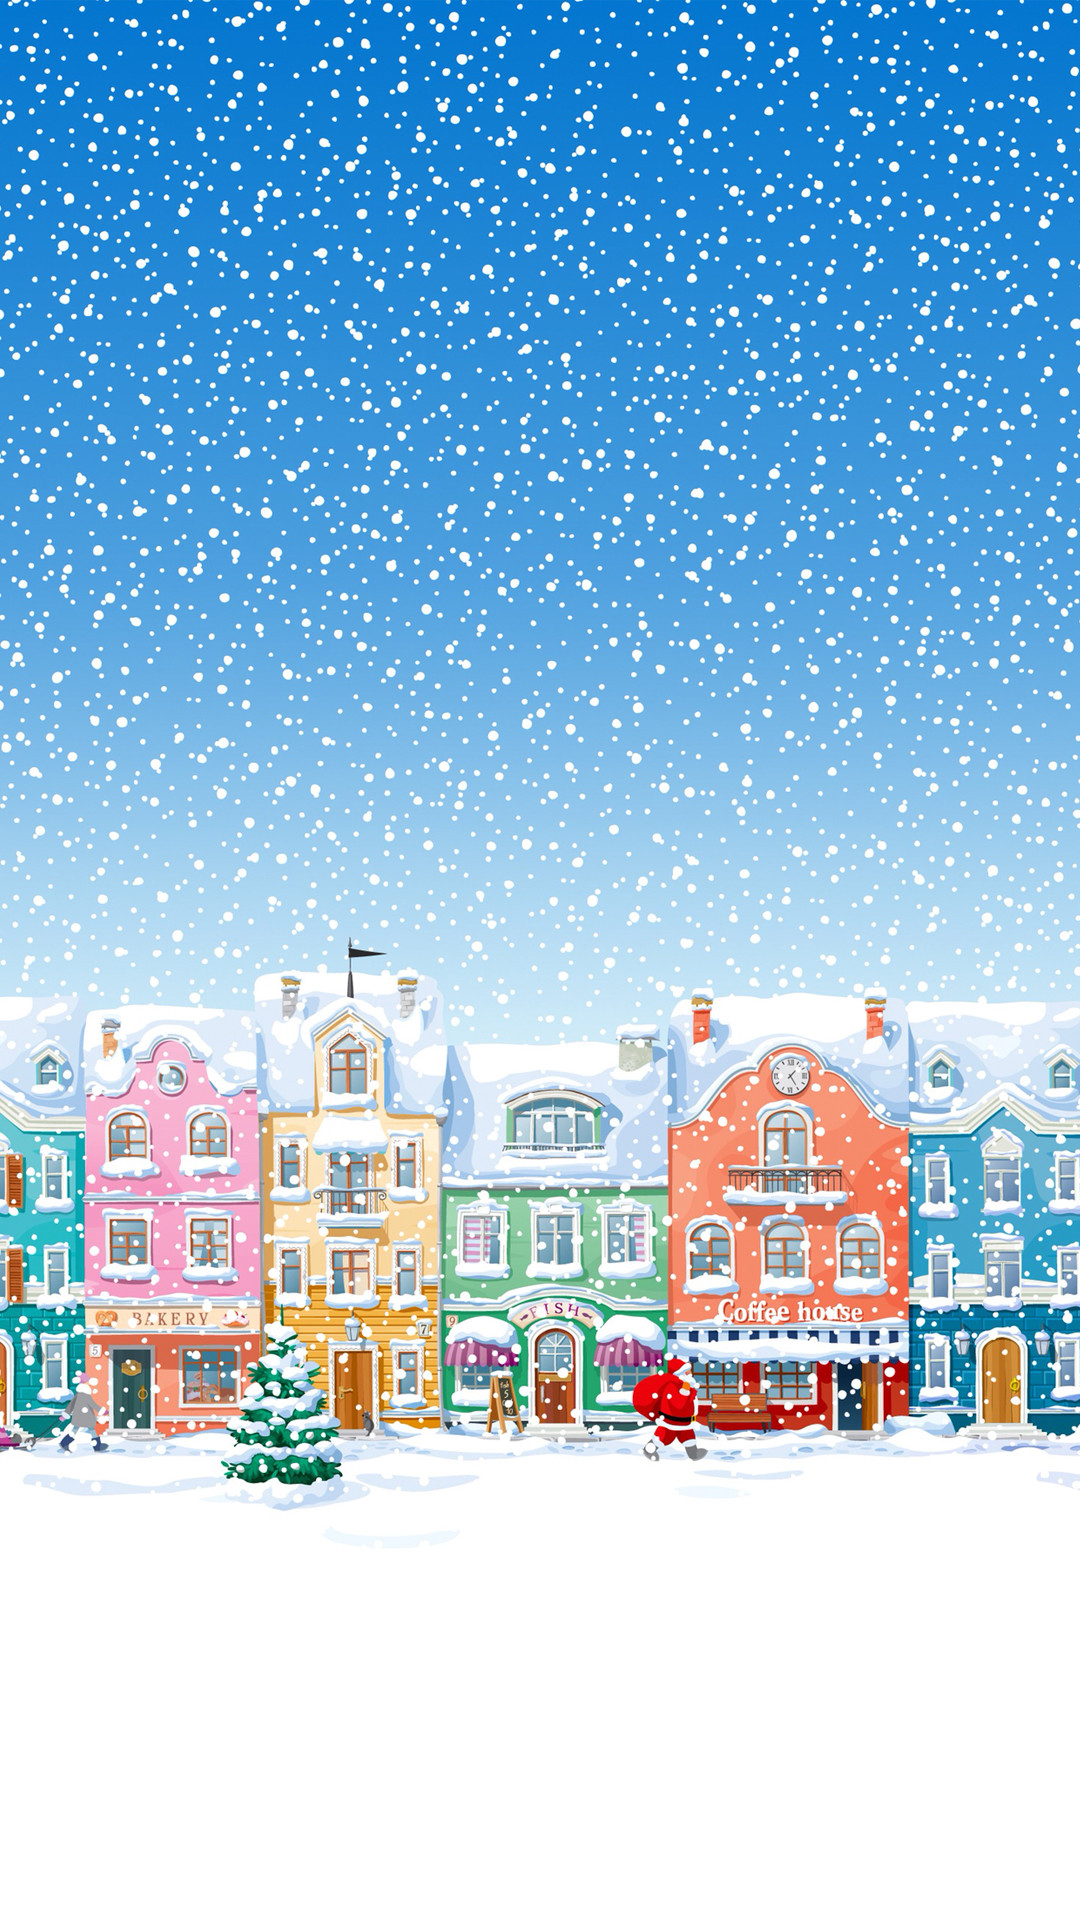 Christmas Wallpaper Iphone 6 Plus 87 Images